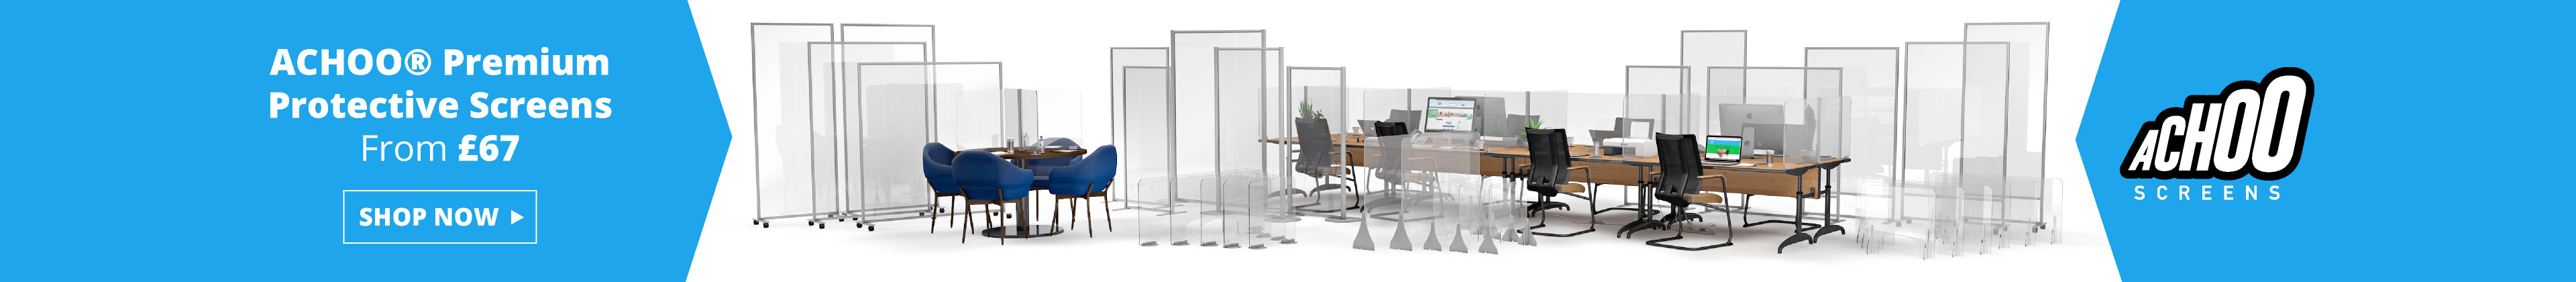 ACHOO-Perspex-Screens-For-Desks-2